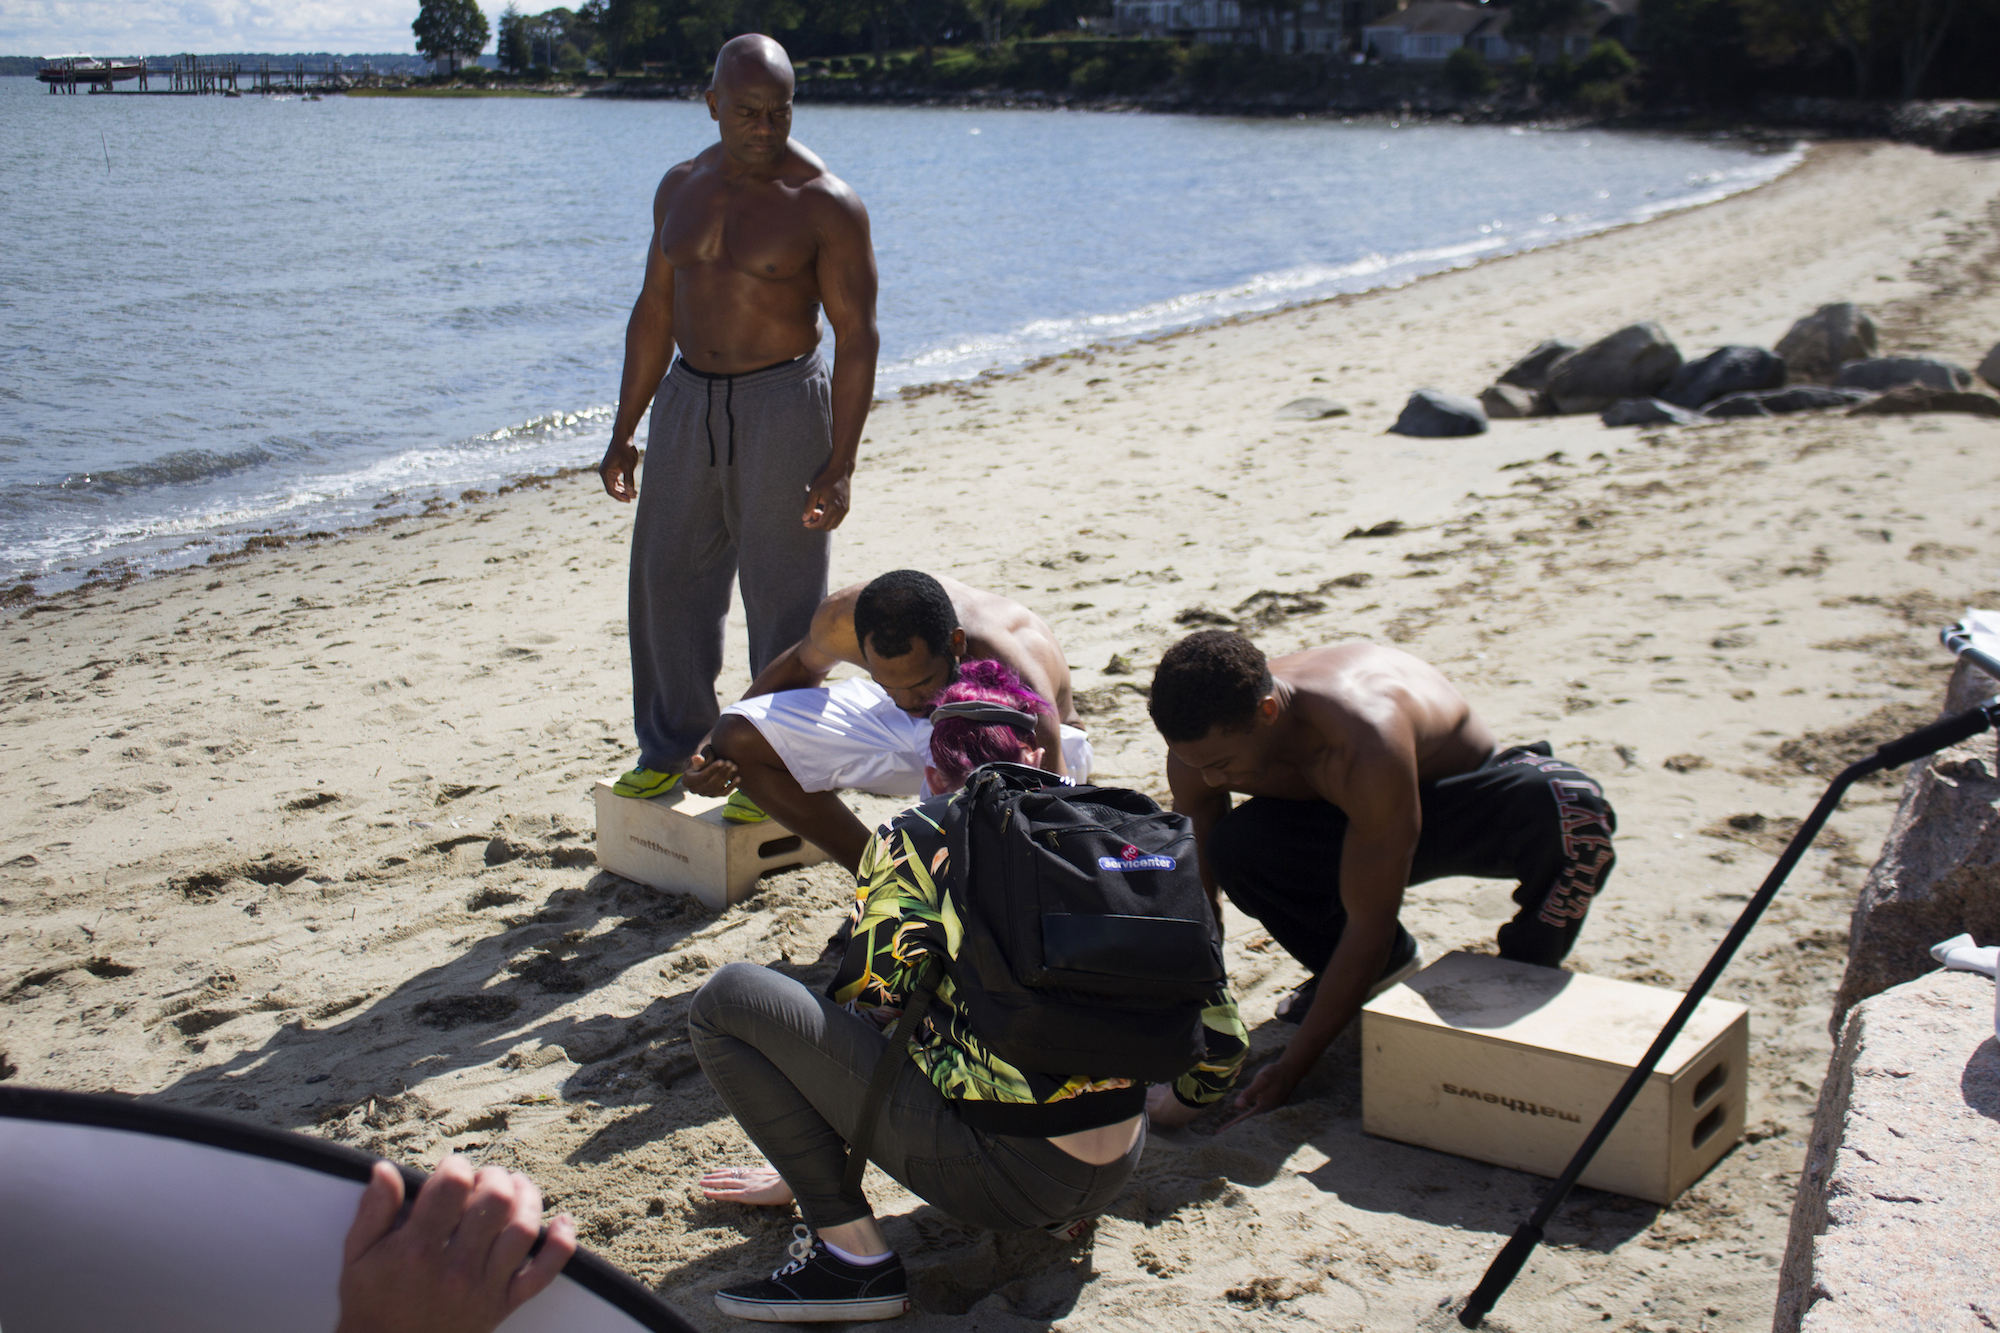 Actors Kevin O. Peterson, Reggie Joseph and Sean Brown with Writer, Director/Producer Geena Matuson as they dig a ditch on the set of Matuson's production of 'Fauxmercials' beach ads, September 2016.